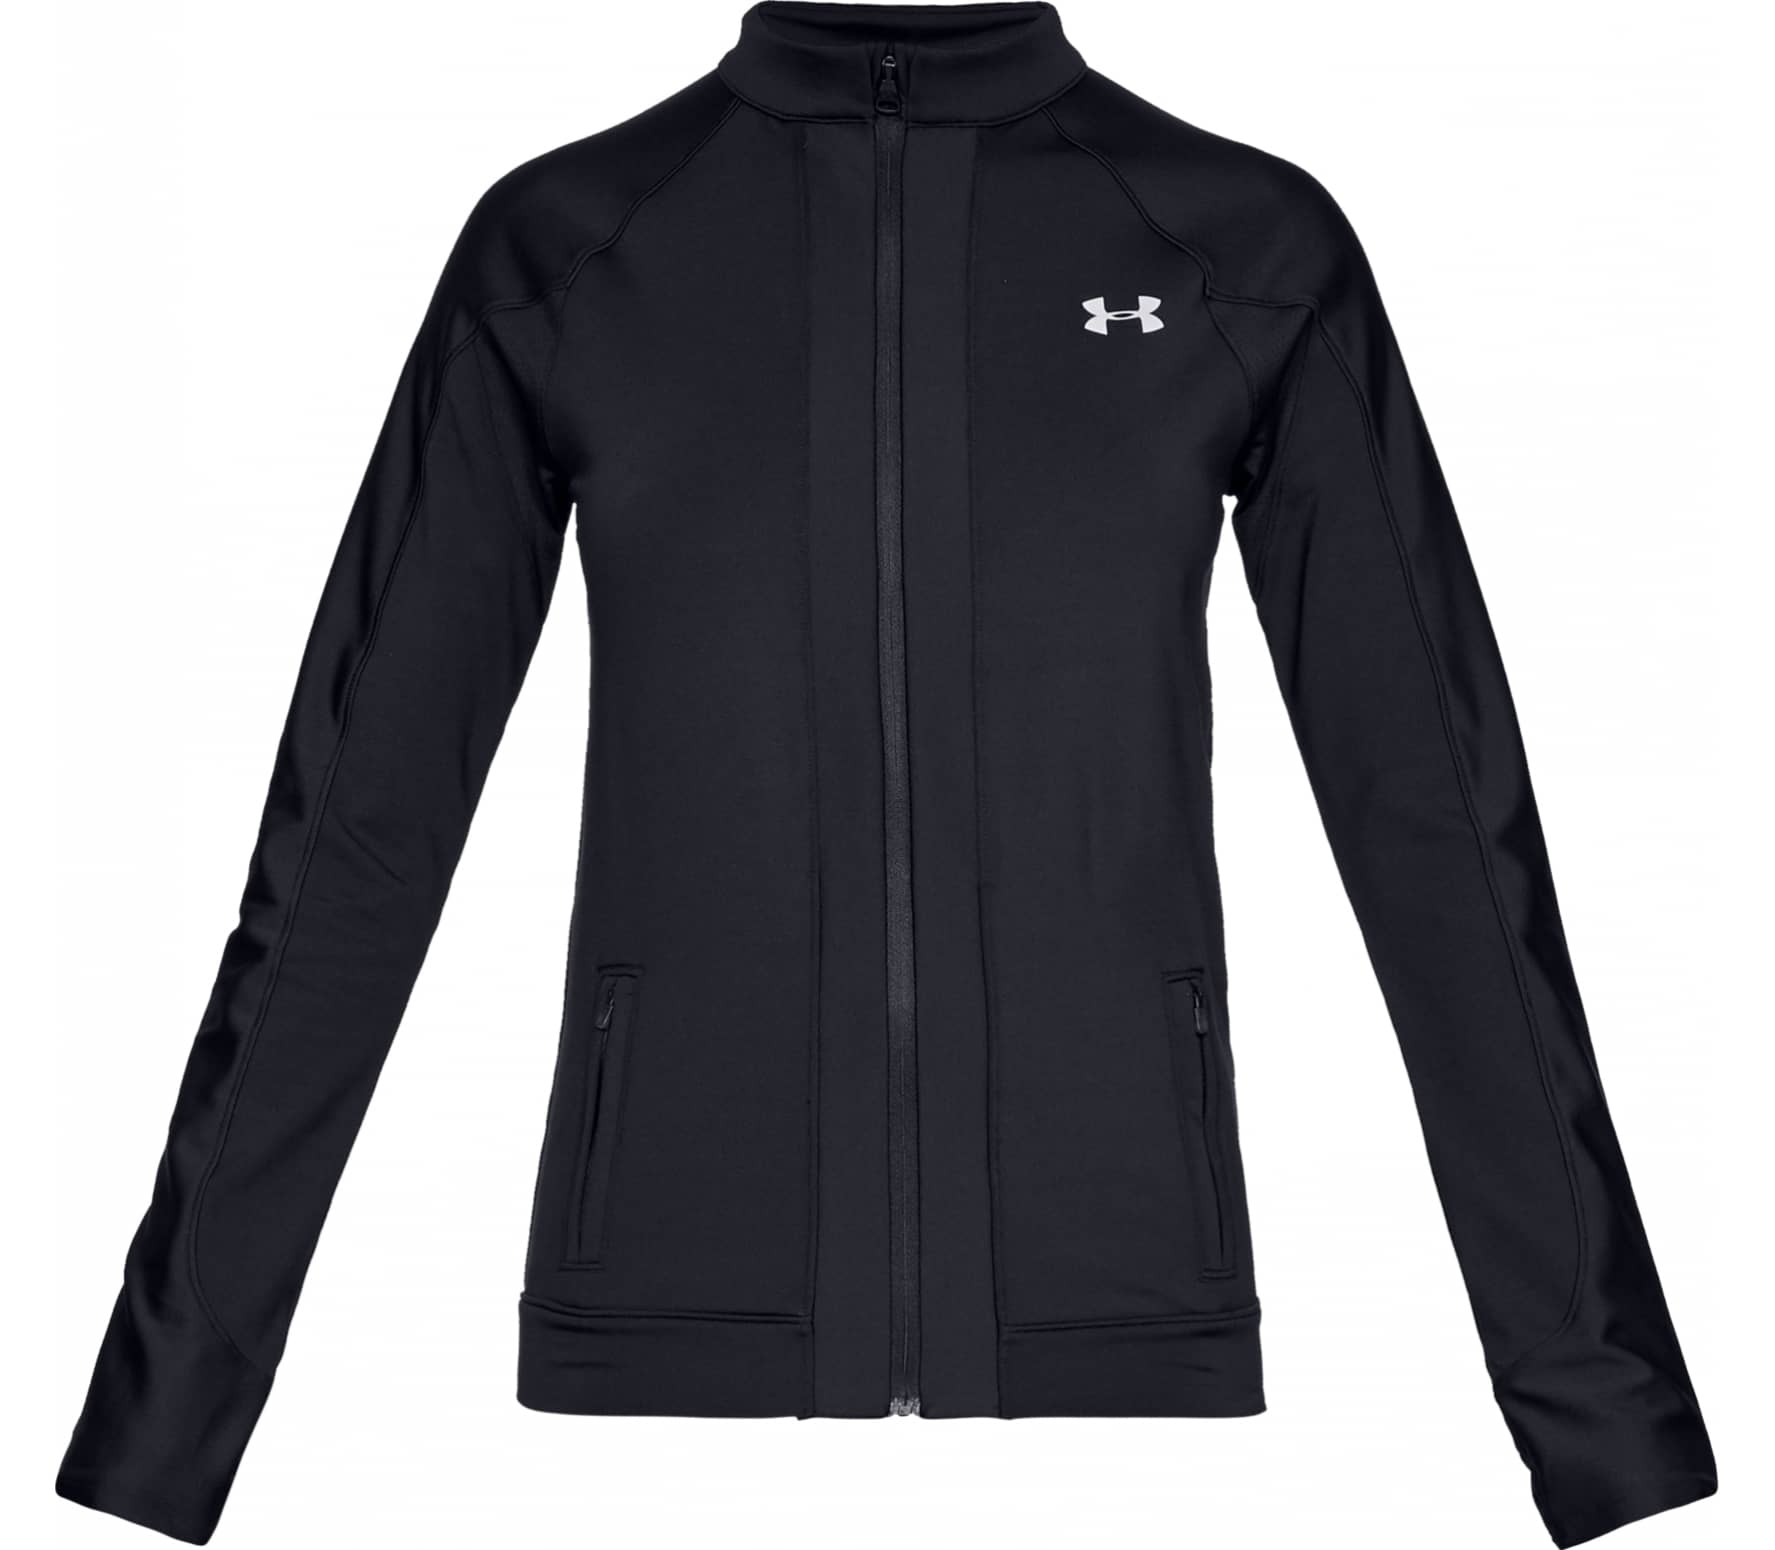 Under Armour - Coldgear women's running jacket (black) - XS thumbnail